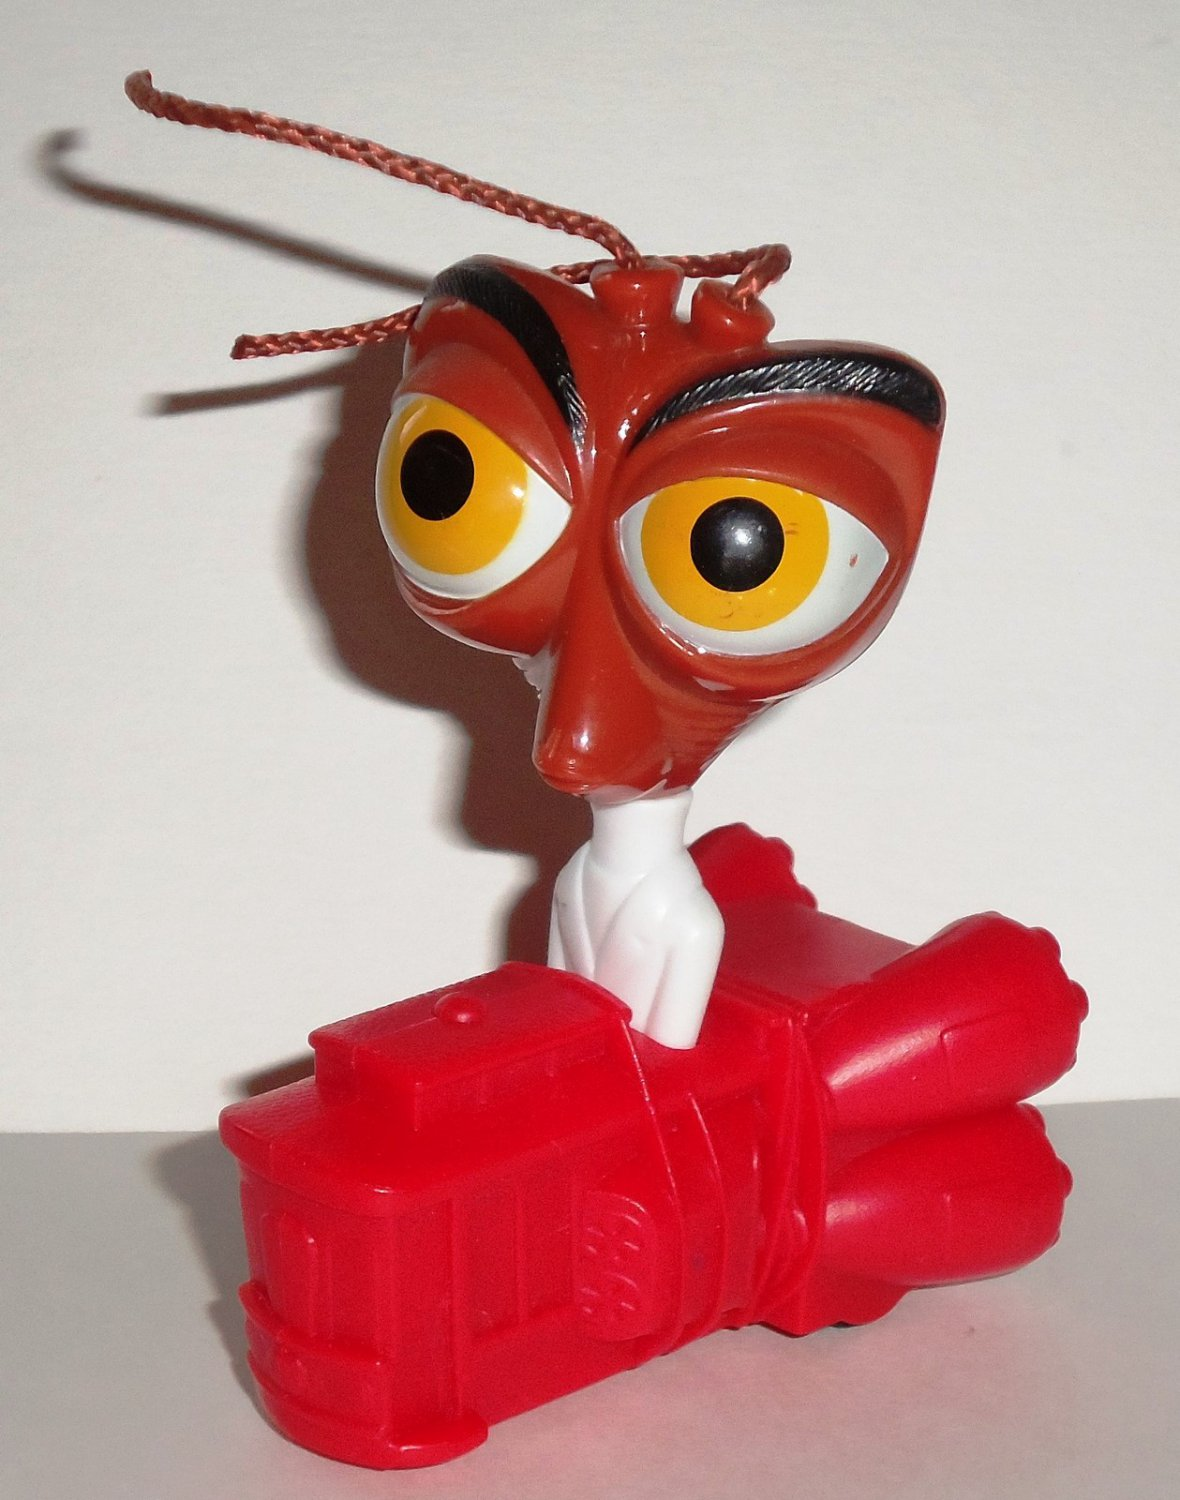 Mcdonald S 2009 Monsters Vs Aliens Dr Cockroach Ph D Happy Meal Toy Loose Used